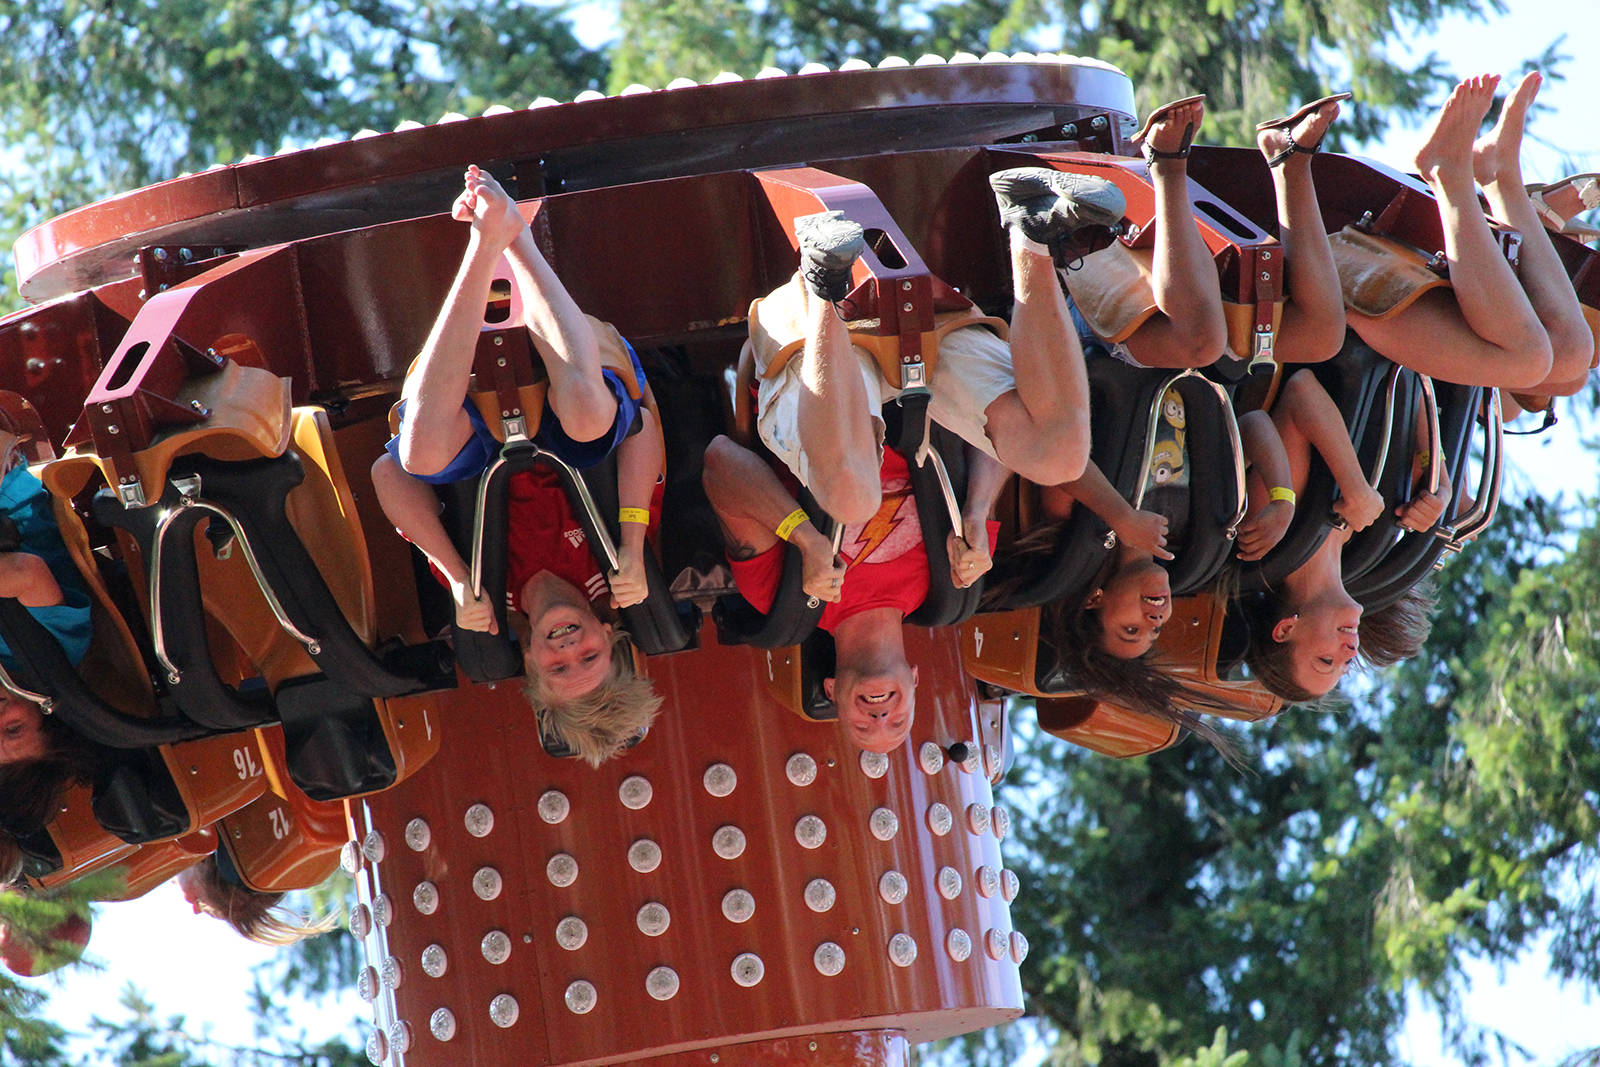 Thrill-seekers live the Roundup ride at Cultus Lake Adventure Park!